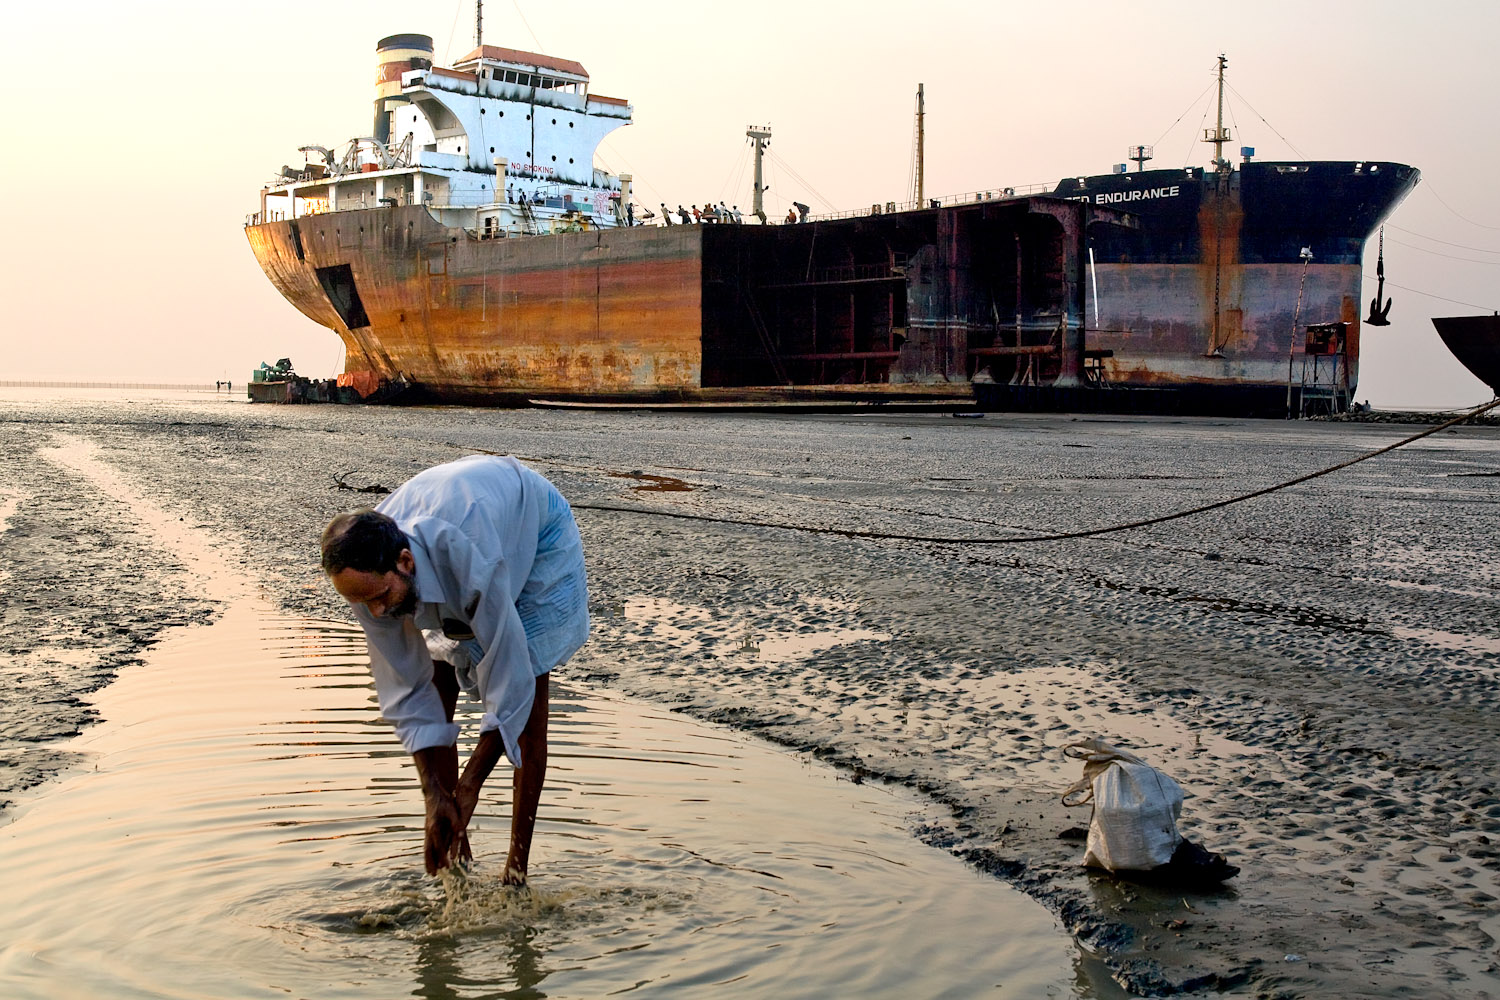 Bangladesh_Ship_Breaking_6856_PRINT_2